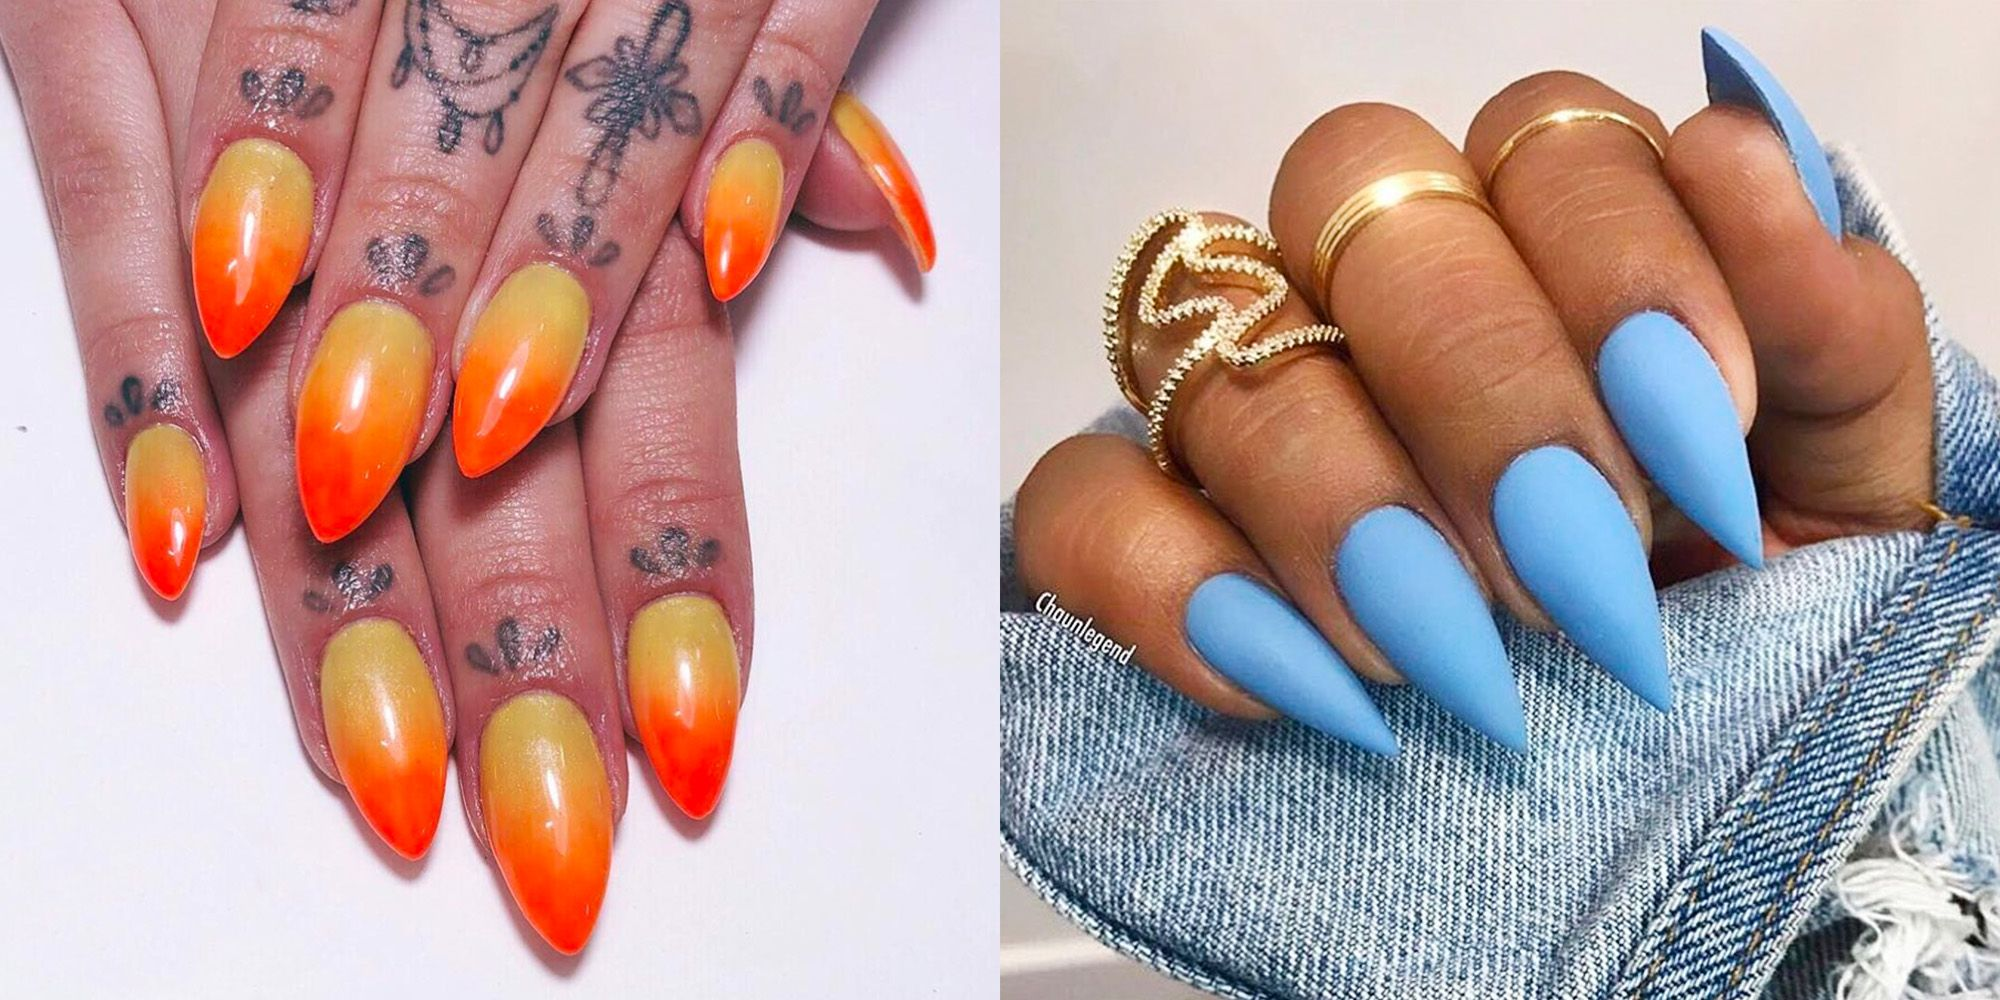 10 Best Stiletto Nails Designs 2018   Pointy Stiletto Acrylic Nail